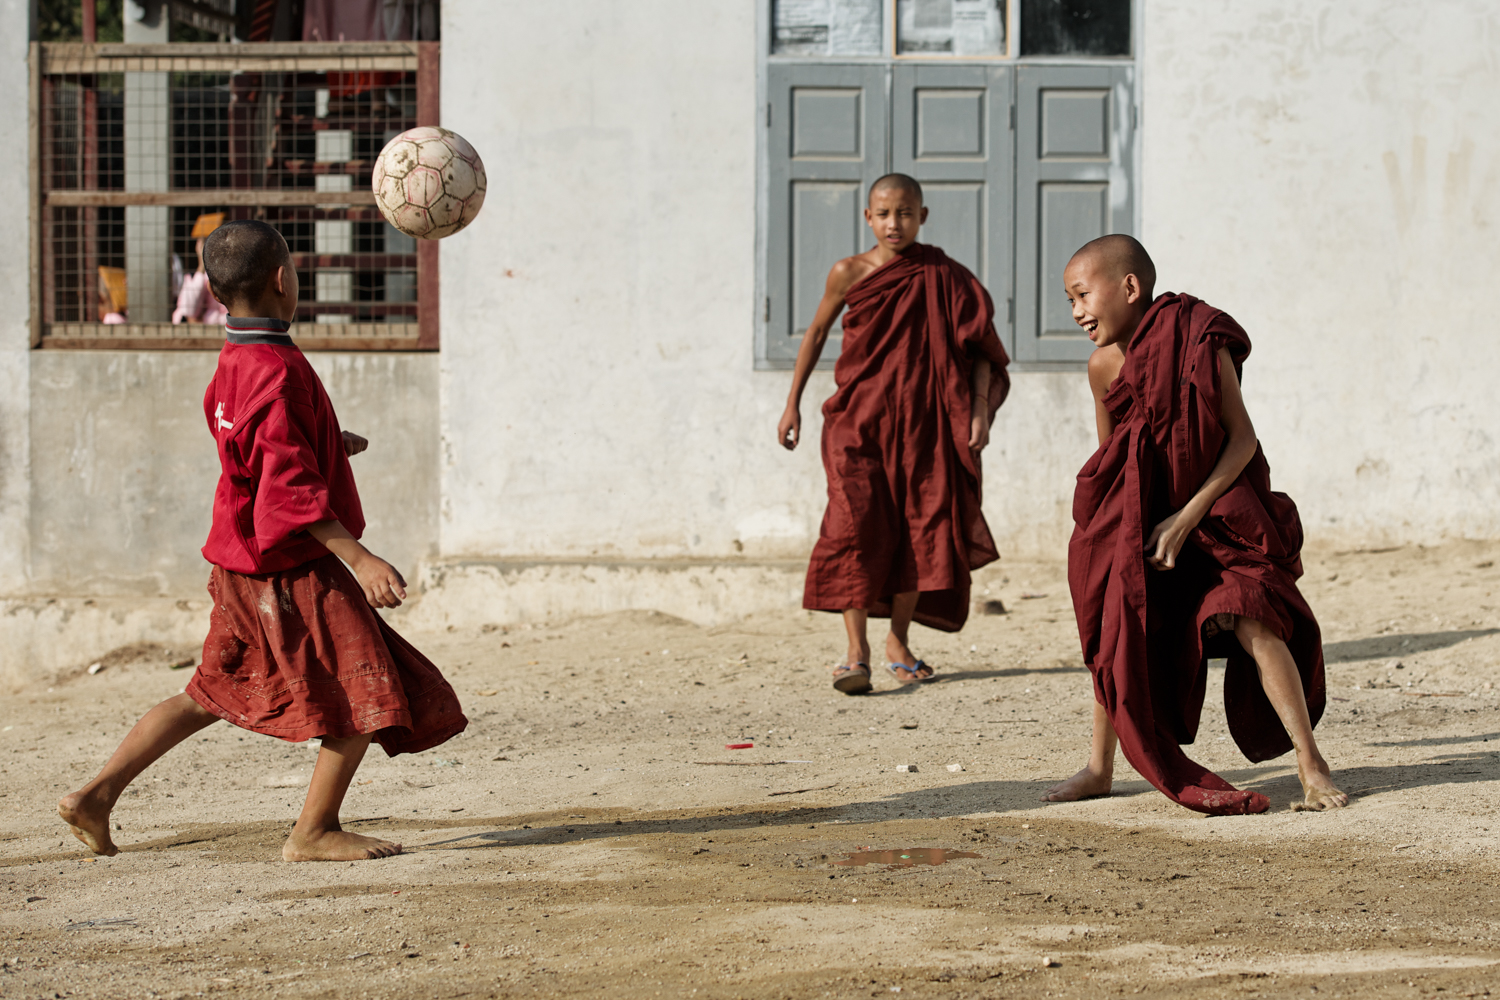 #childrenoftheworld #myanmar #travel #travelphotography #humanity_shots_ #monks #football #view #burma #novizes